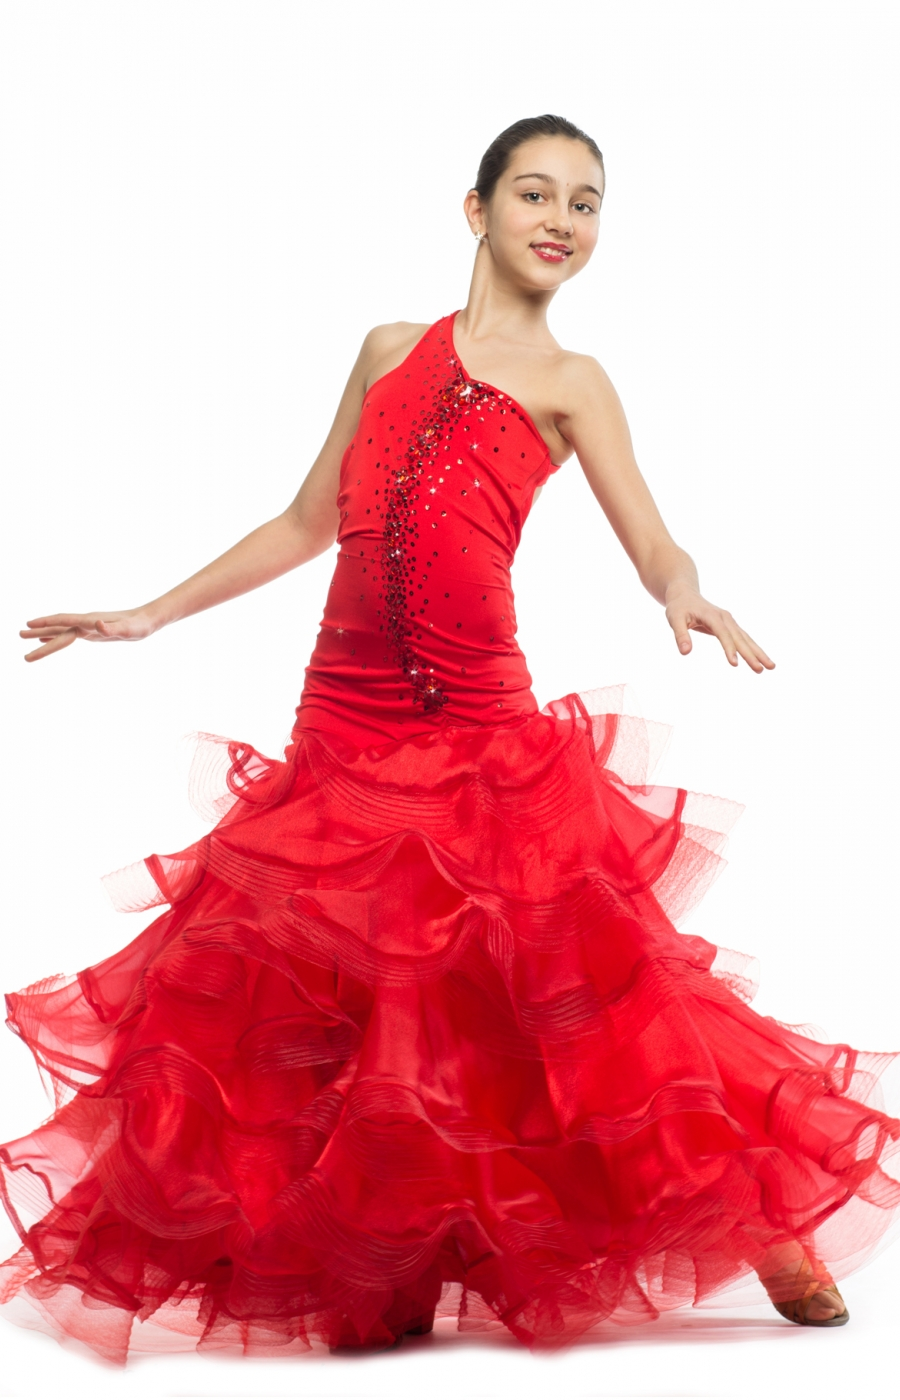 Teen Girl Red Ballroom Dress Flamenco